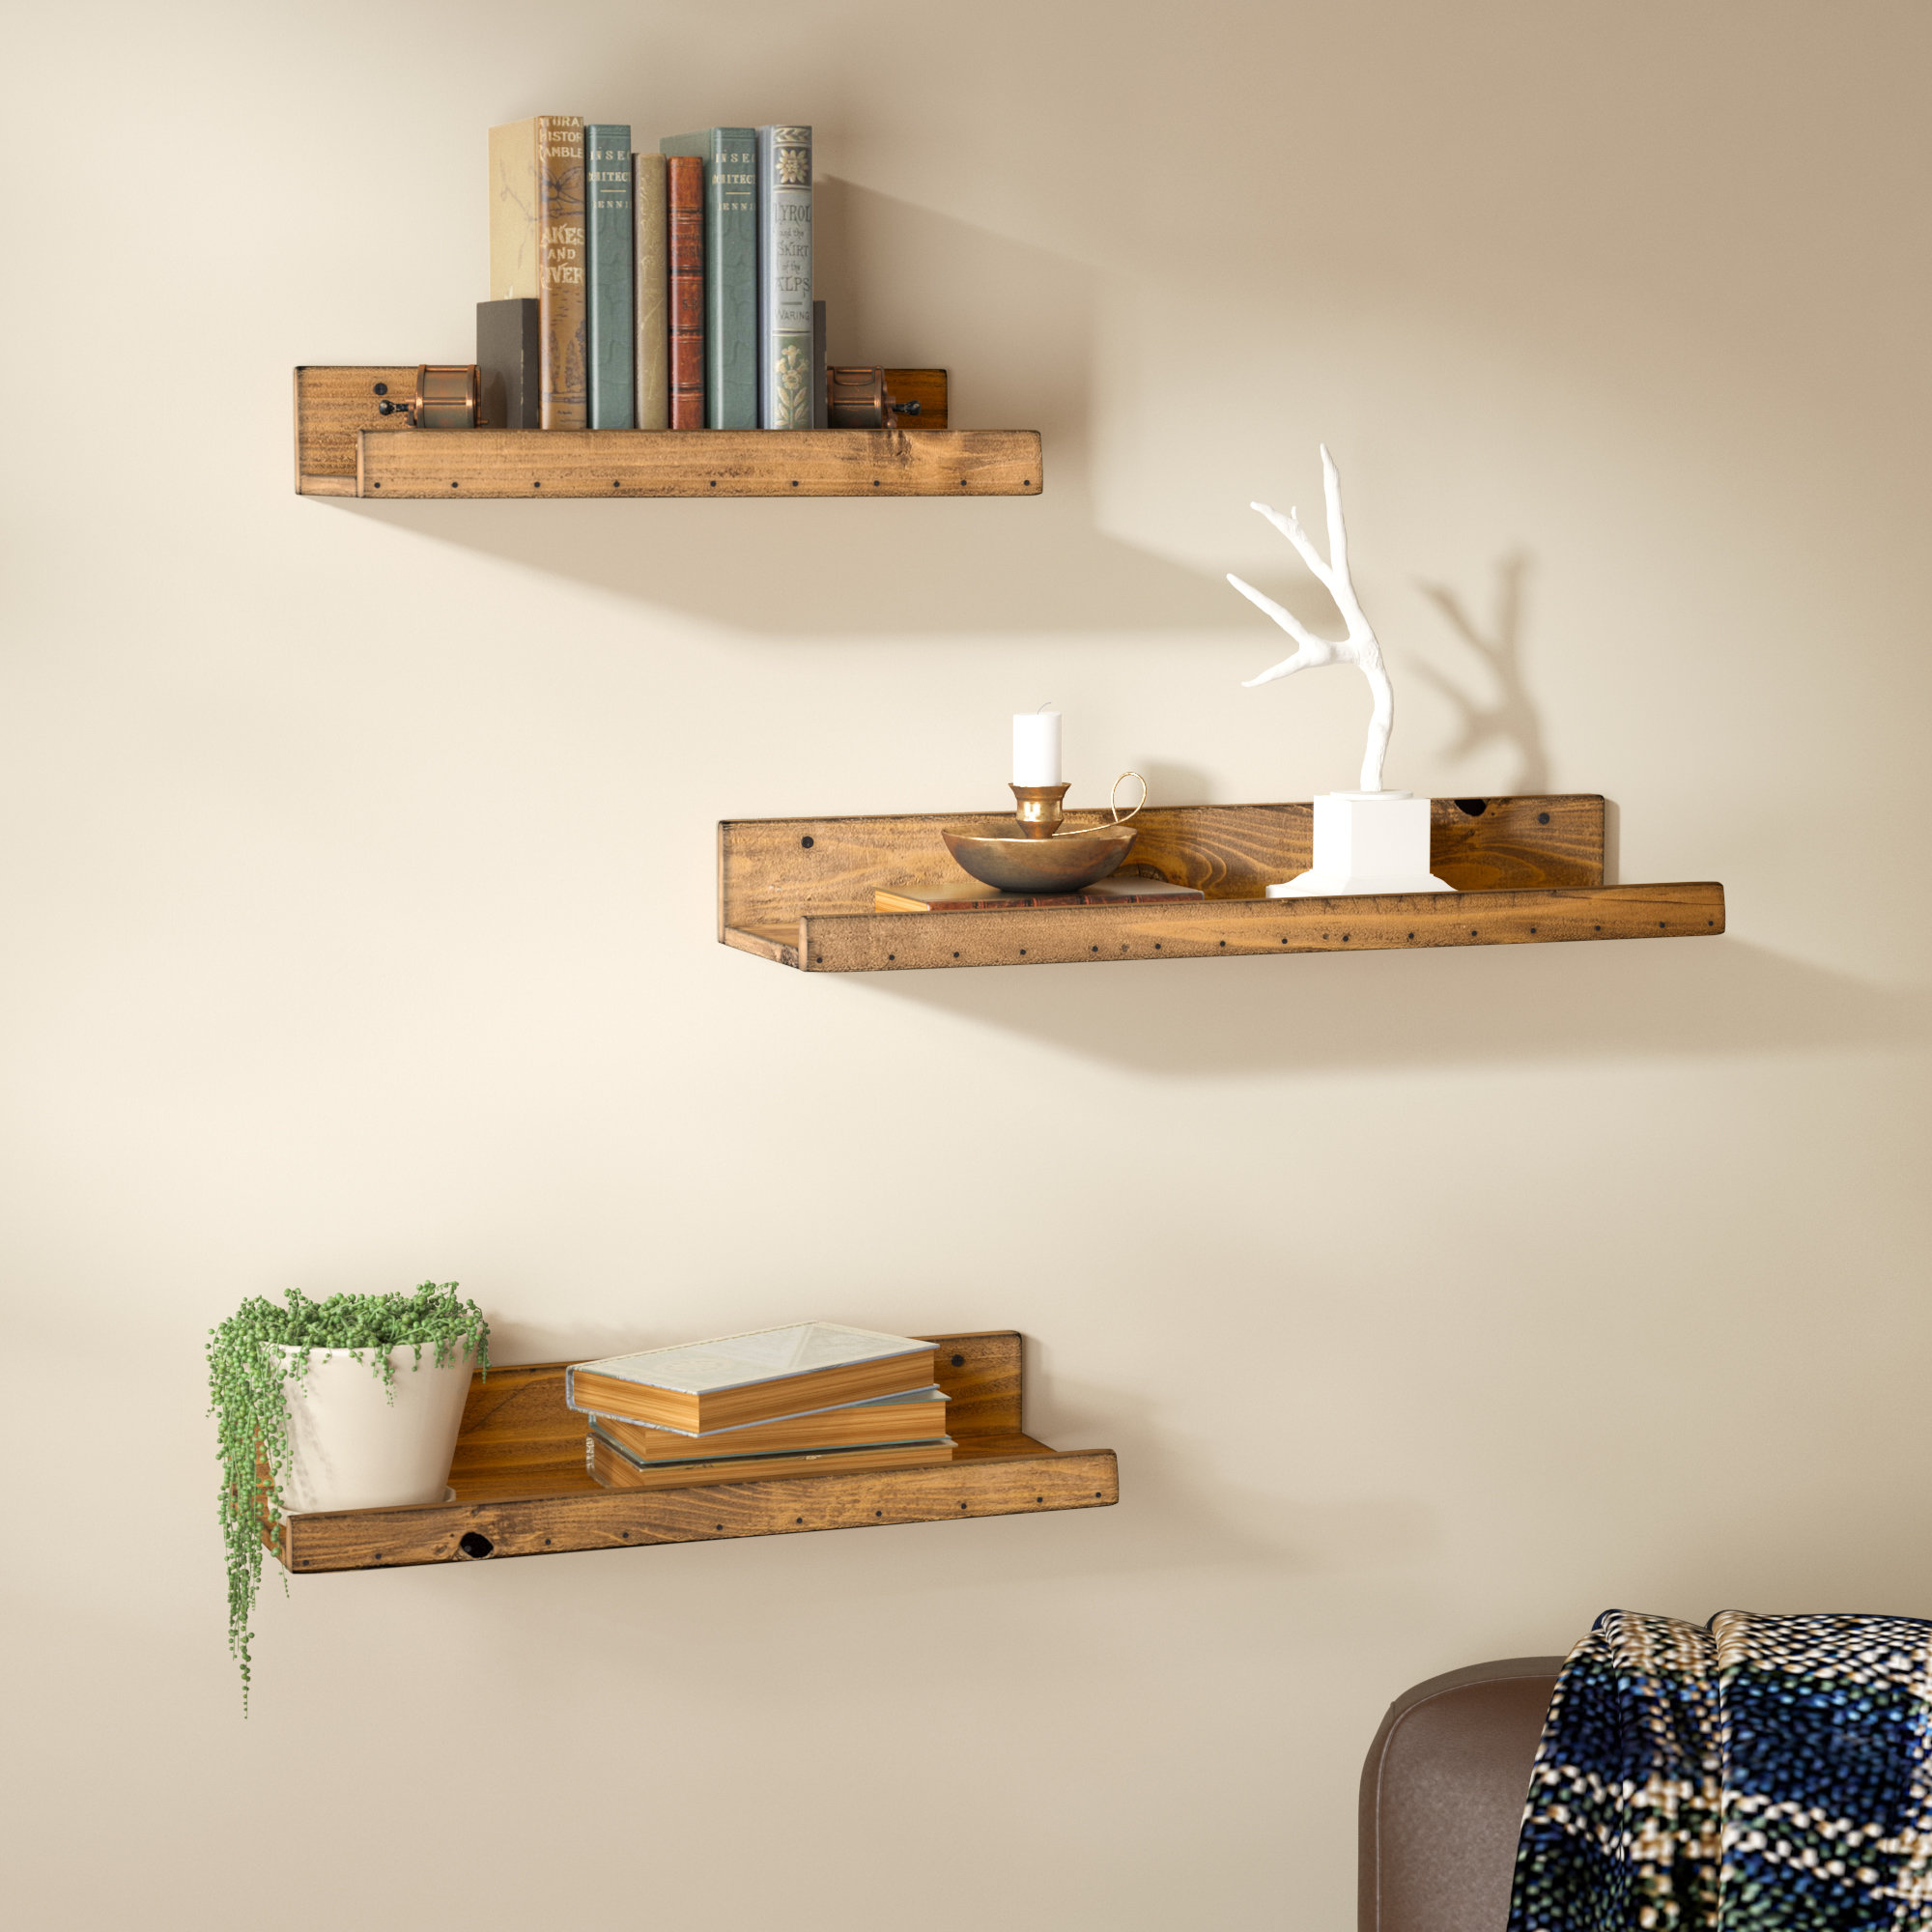 union rustic dunlap piece floating shelf set reviews pine shelves pre glued underlay with dpm homemade corner invisible wall bookshelf plans london custom shelving unit cabinet